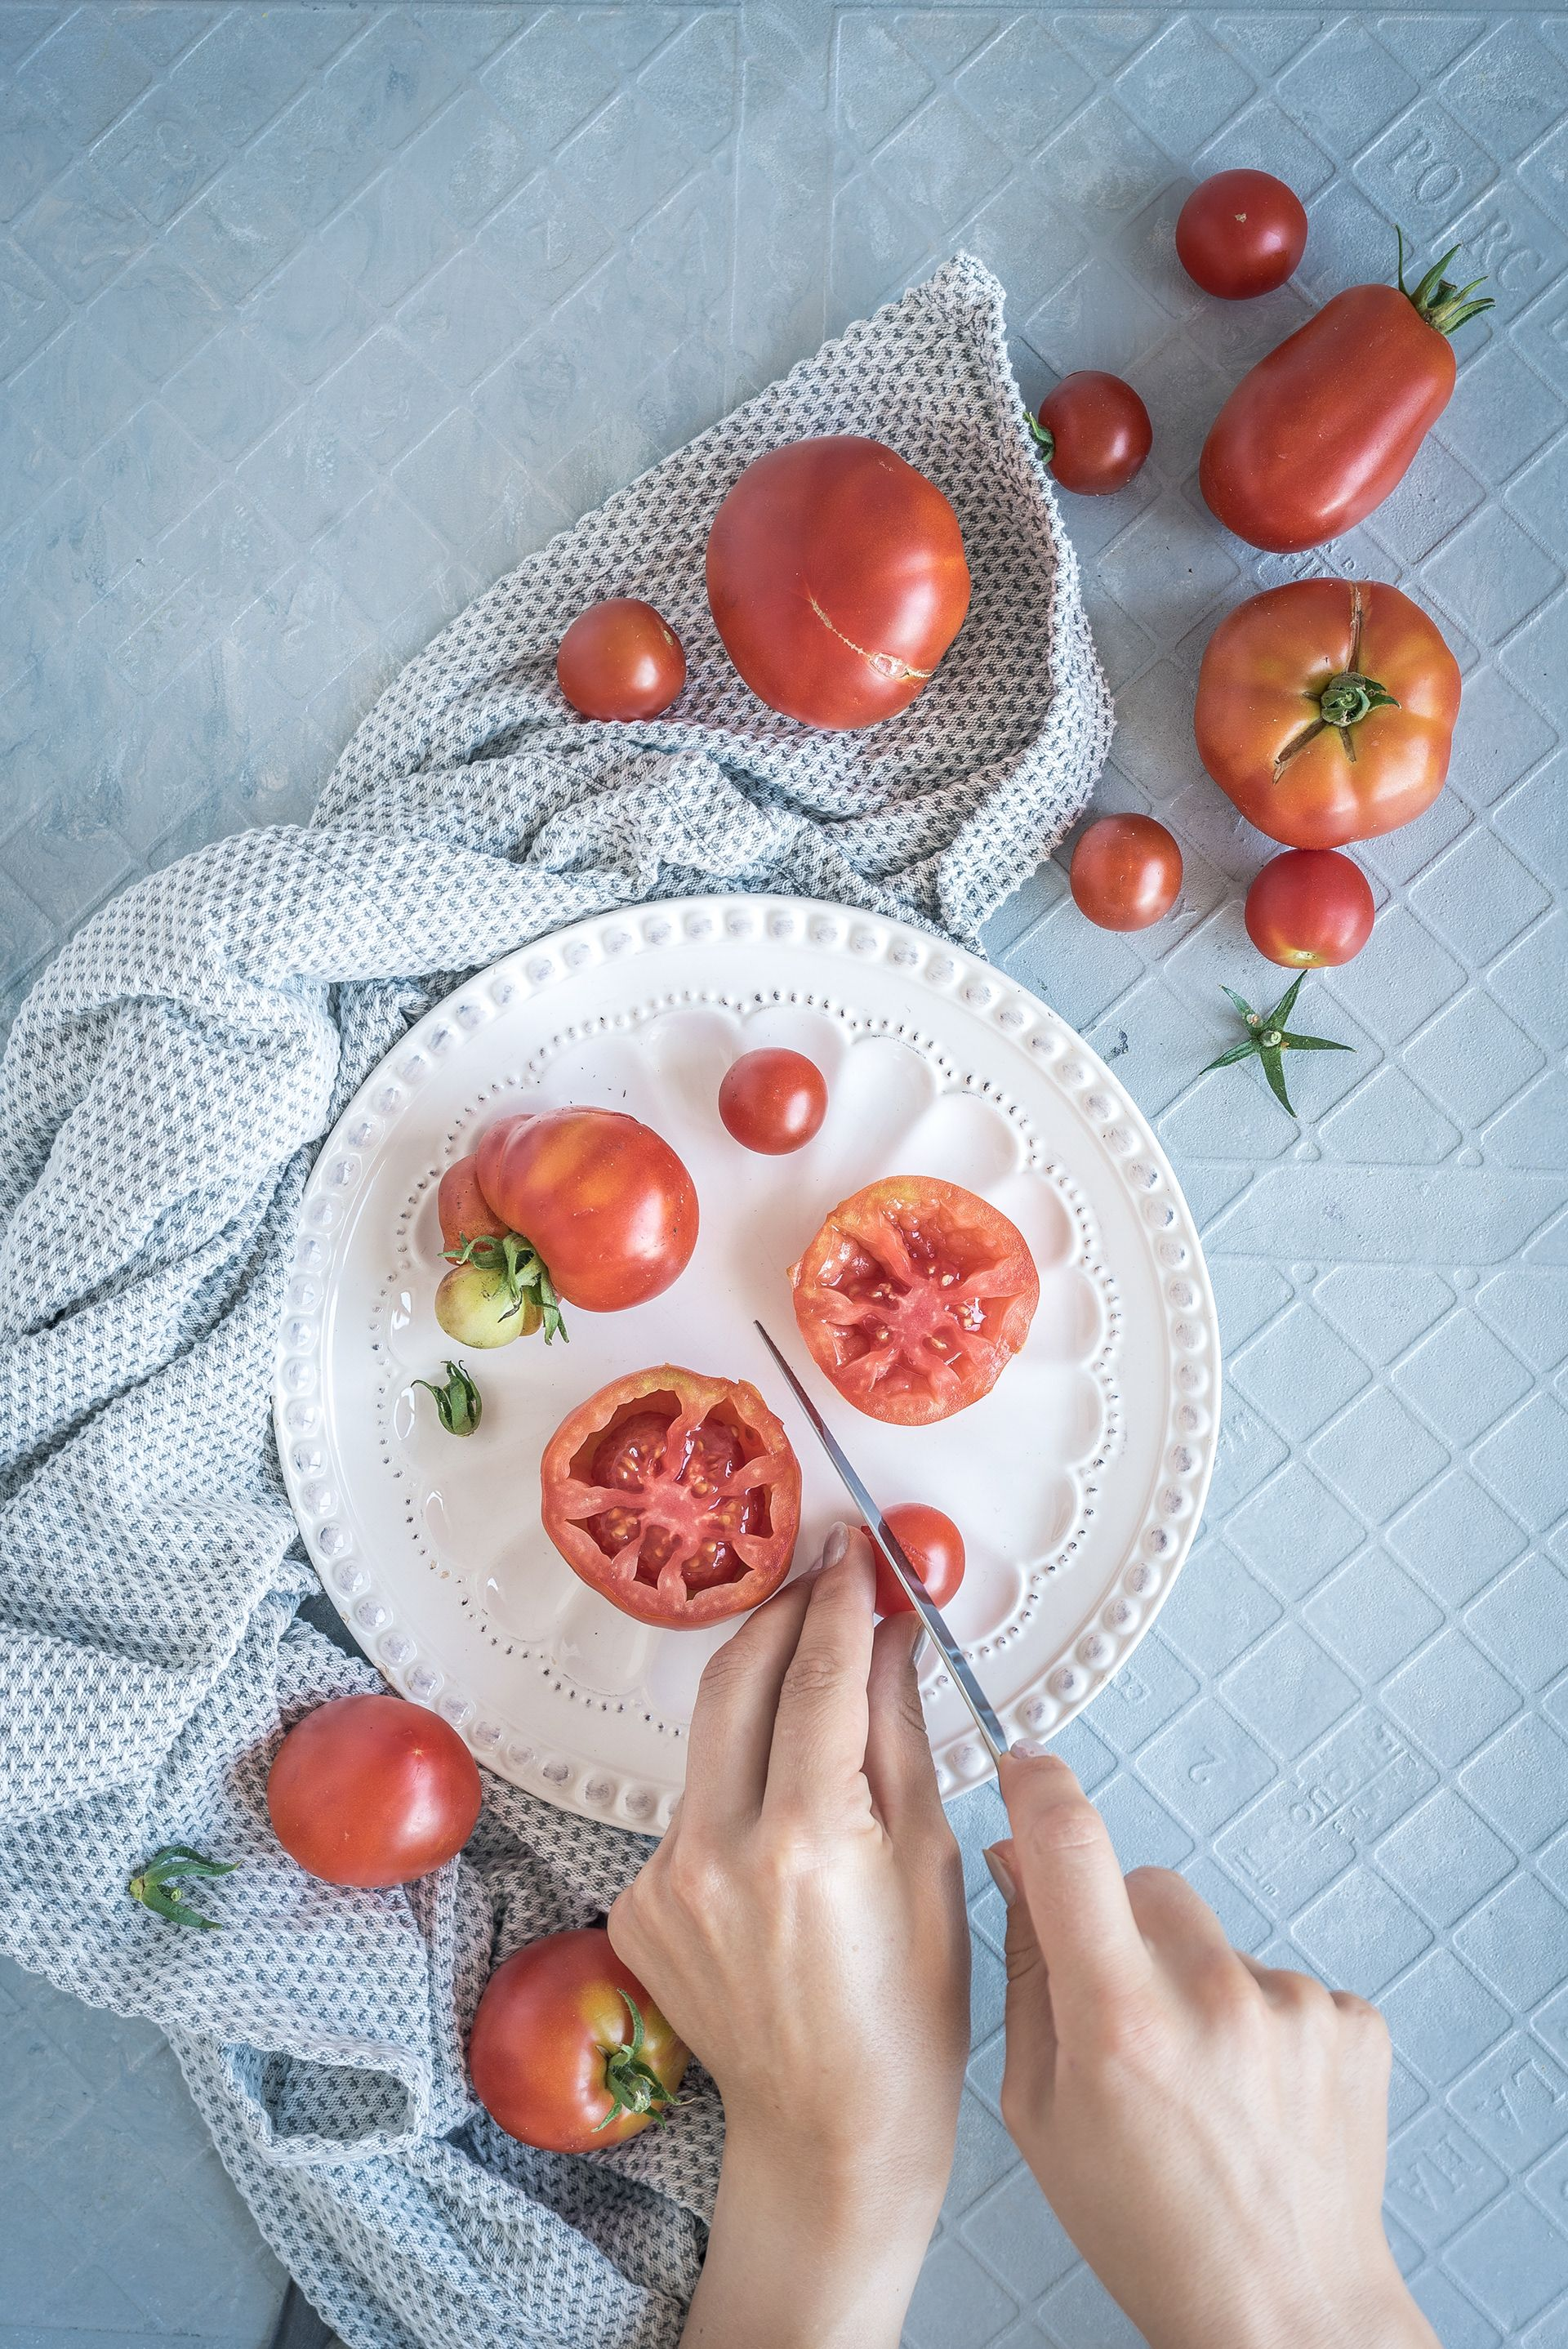 Slicing Tomatoes On A Grey And Blue Backdrop Healthylaura Food Photography Foodphotogra Rustic Food Photography Healthy Food Photography Food Photography